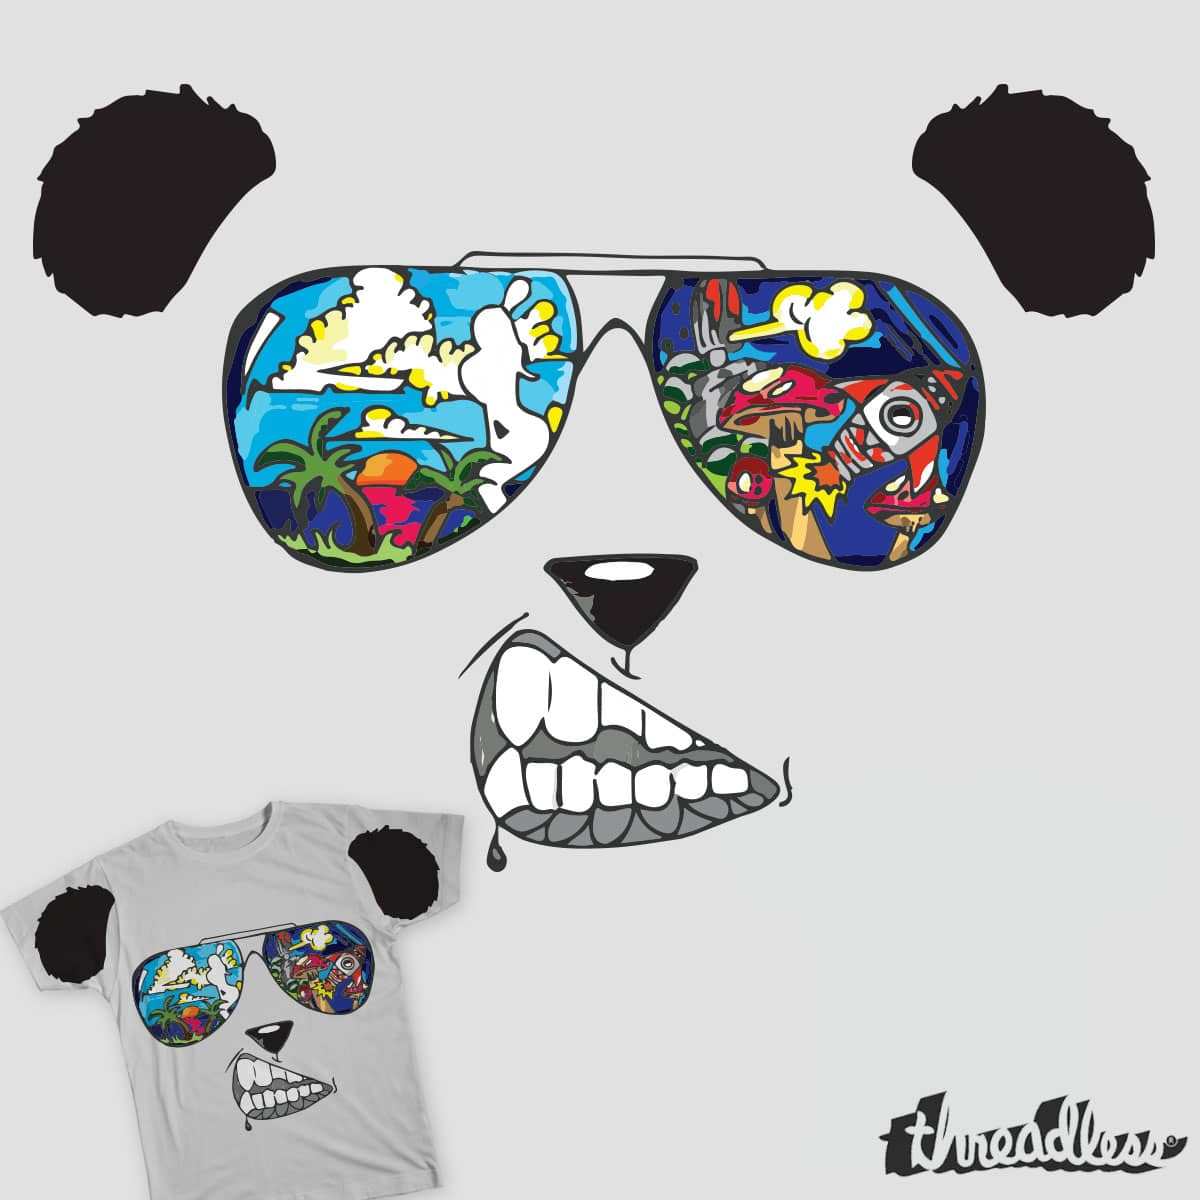 Paradise Panda by slade92 and S-Marley on Threadless